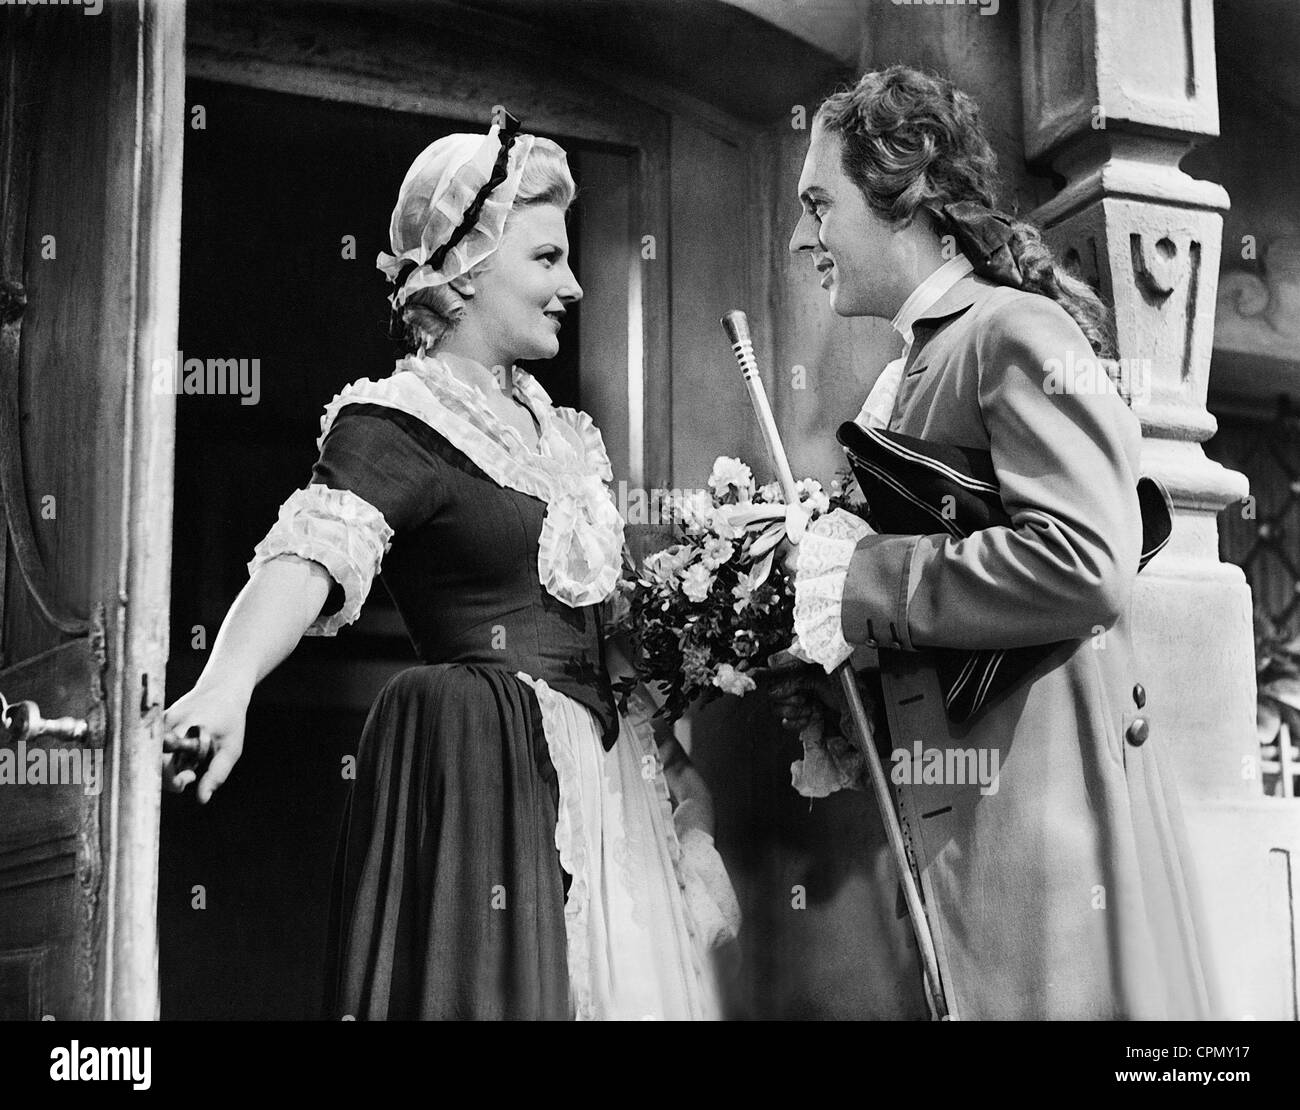 Winnie Markus and Hans Holt in 'Whom the Gods Love', 1942 - Stock Image